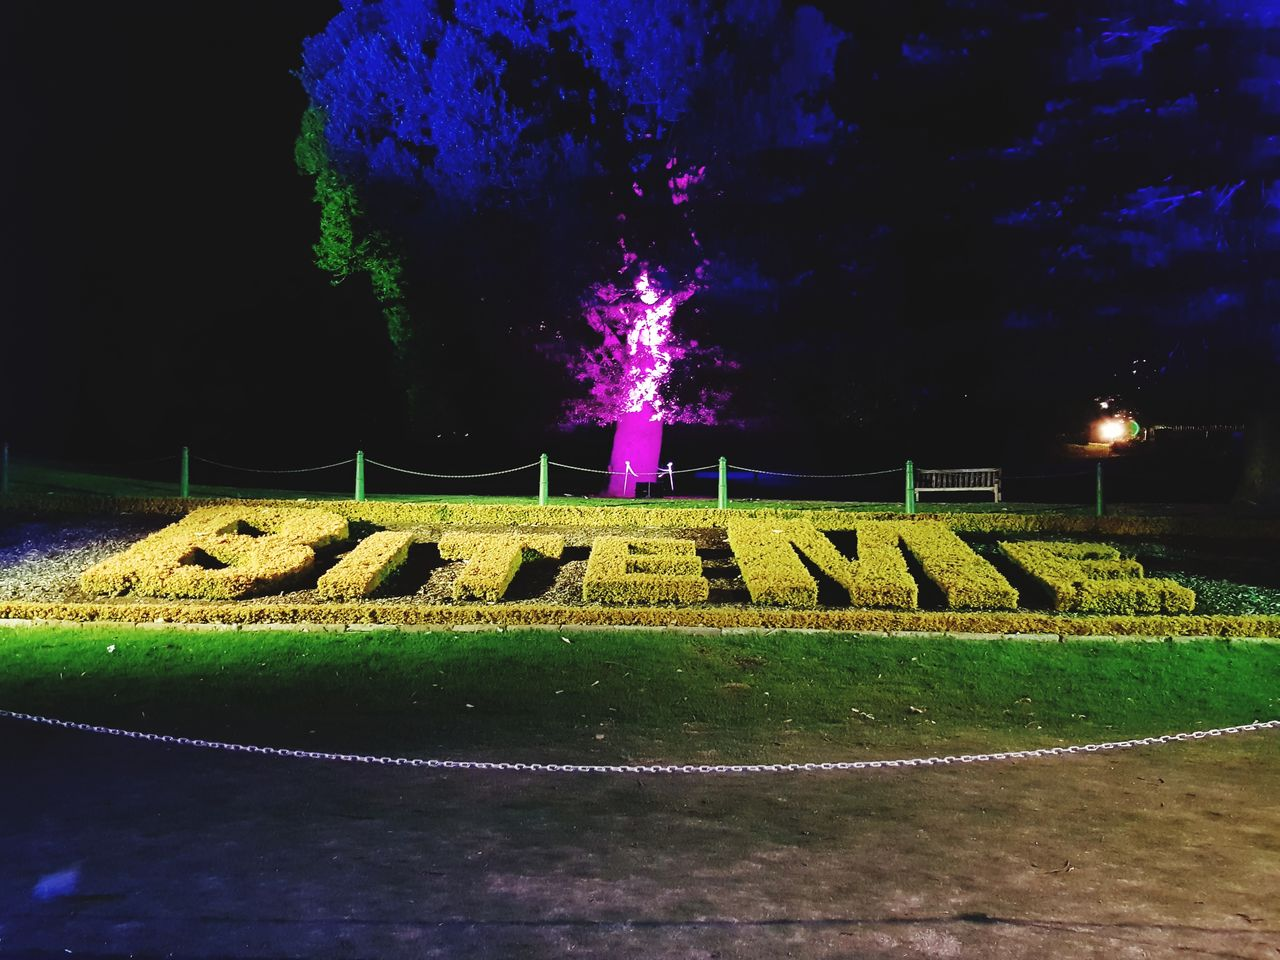 night, illuminated, plant, no people, nature, tree, communication, sky, text, outdoors, green color, sign, park, grass, motion, architecture, glowing, long exposure, creativity, park - man made space, purple